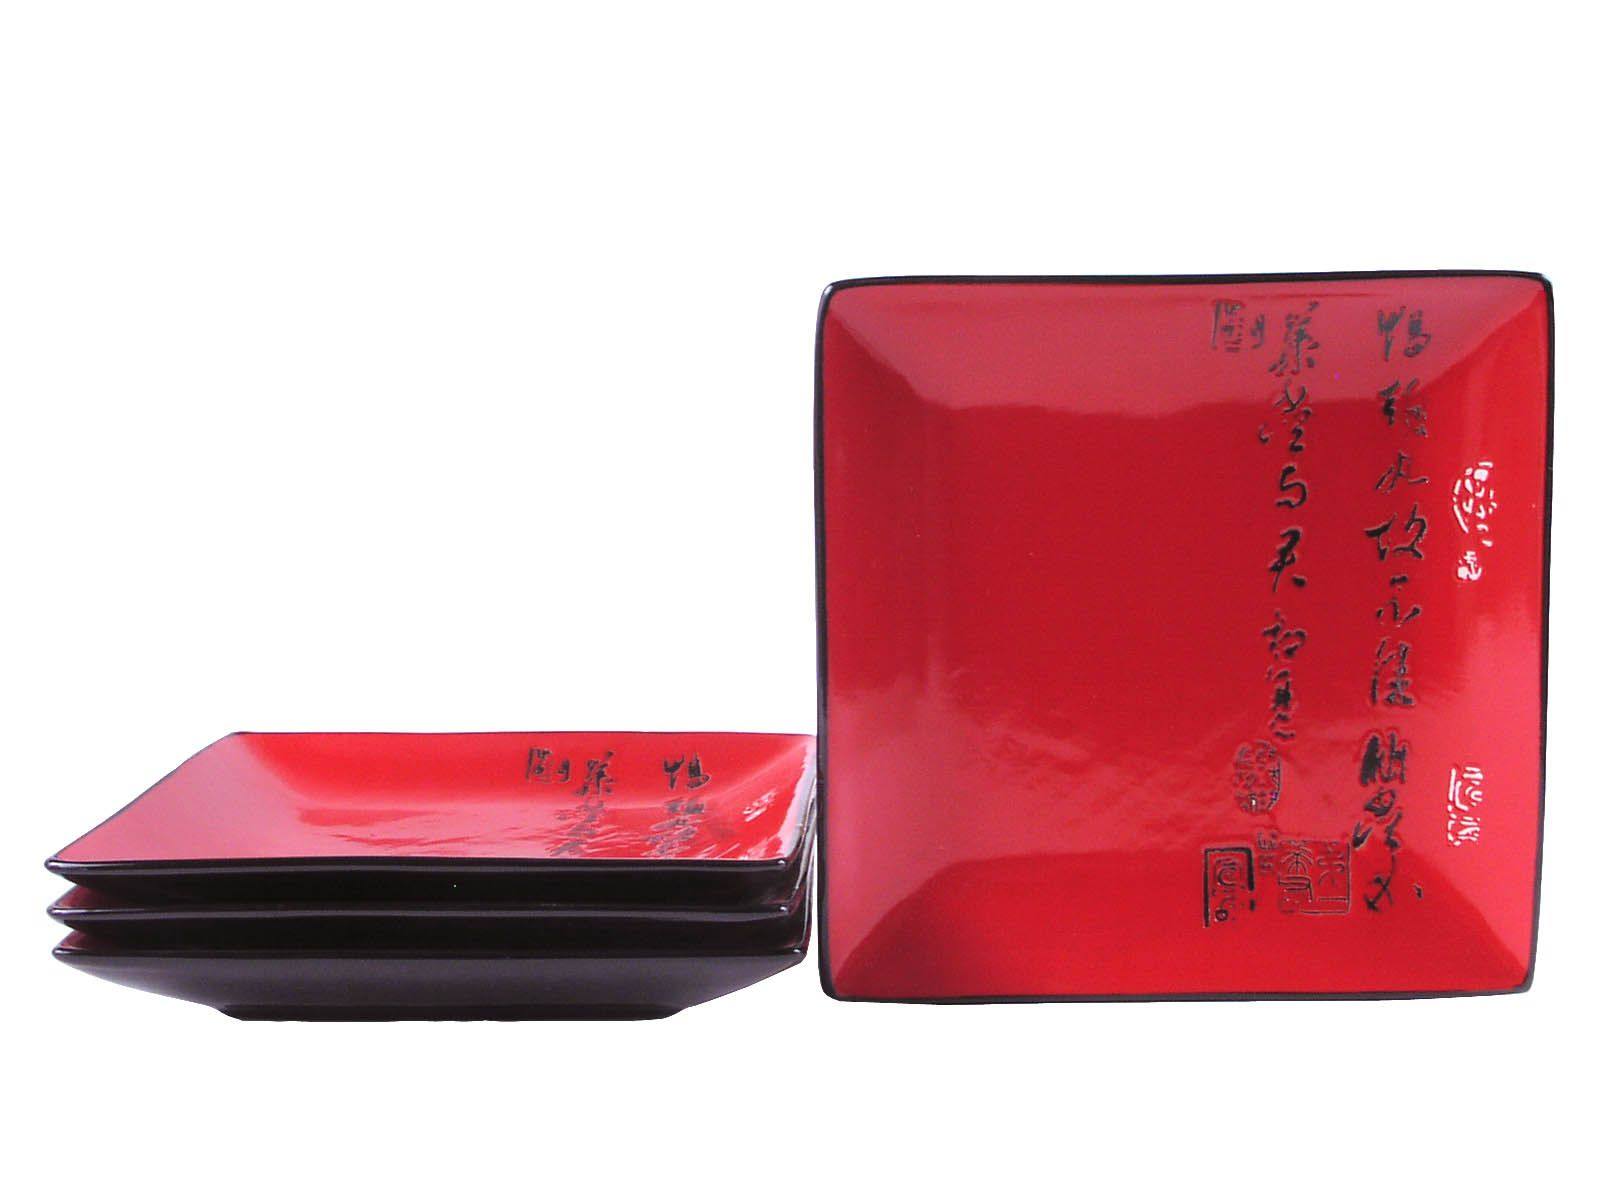 Chinese Calligraphy Appetizer Plates Japanese Plates Tableware Set Square Plates